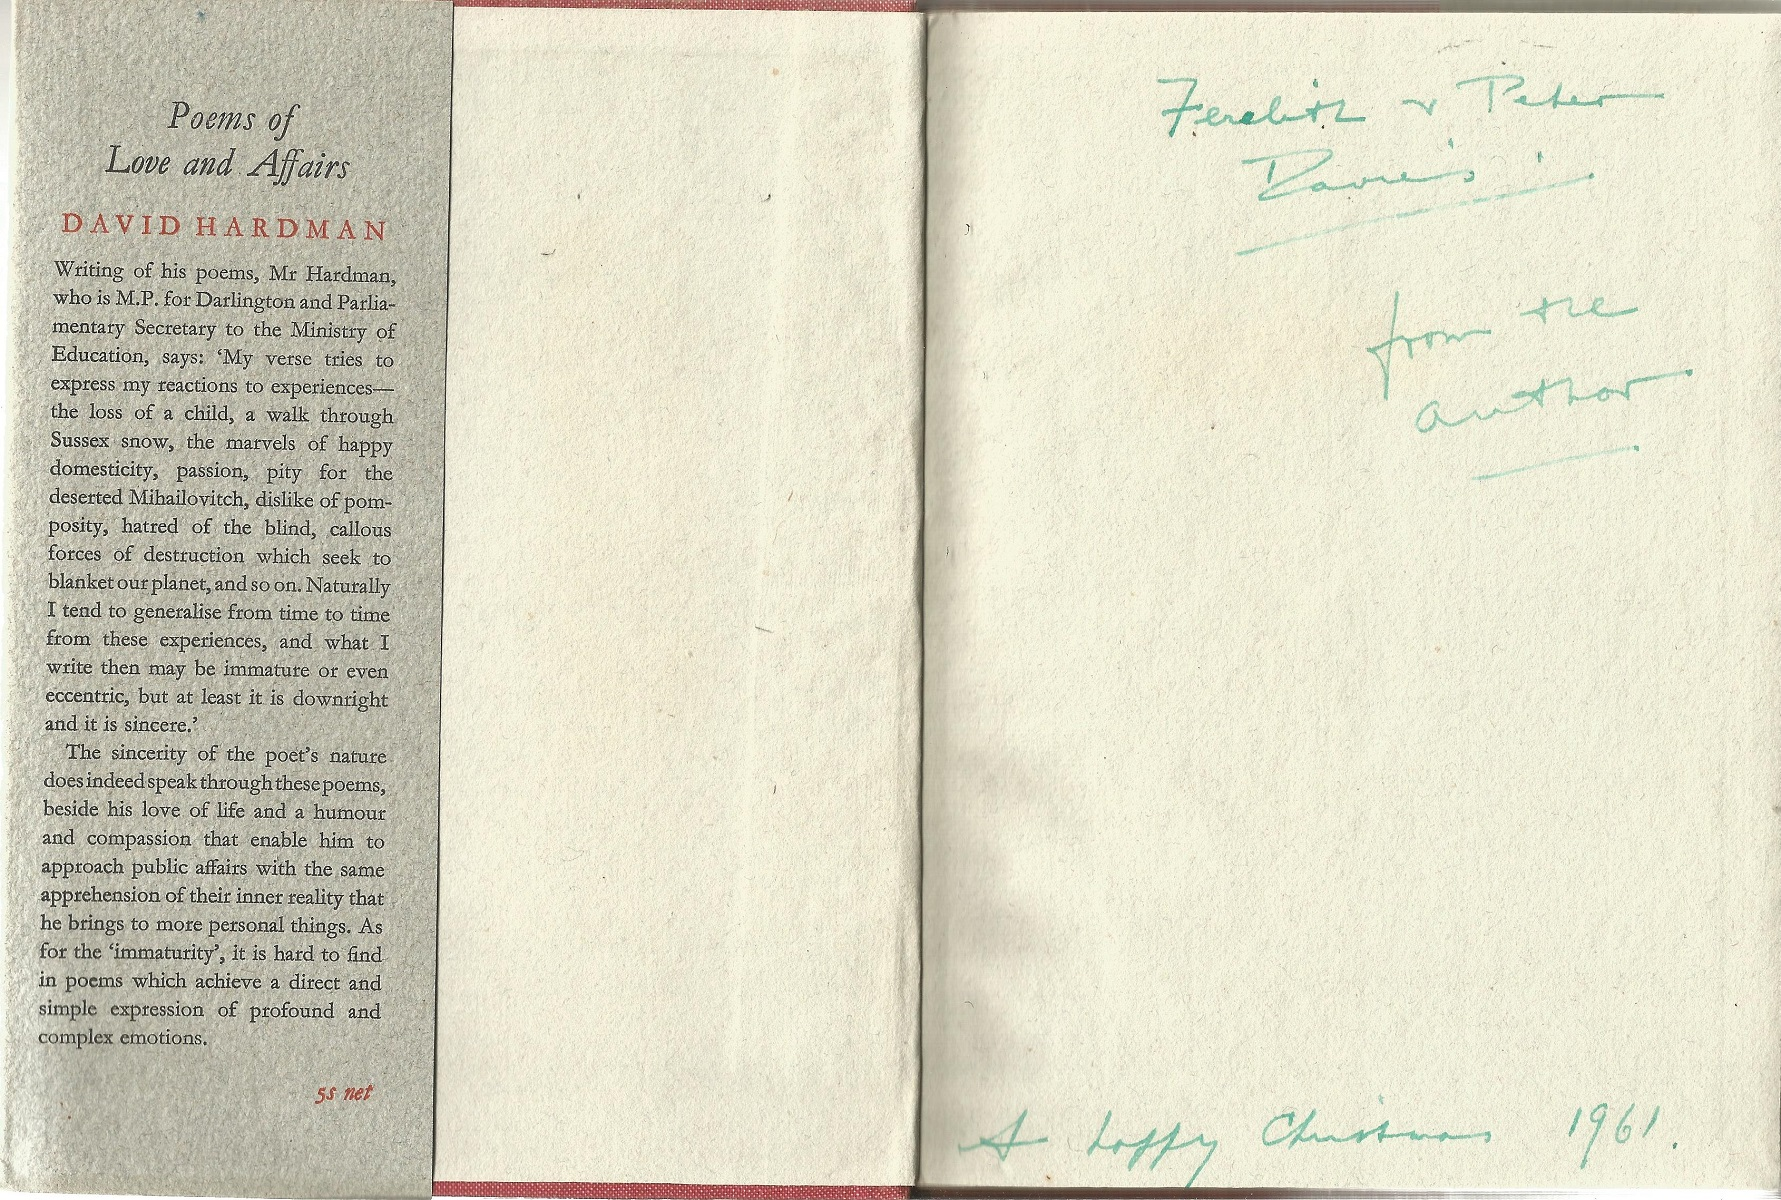 David Hardman Hardback Book Poems of Love and Affairs signed by the Author on the Title Page dated - Image 2 of 3